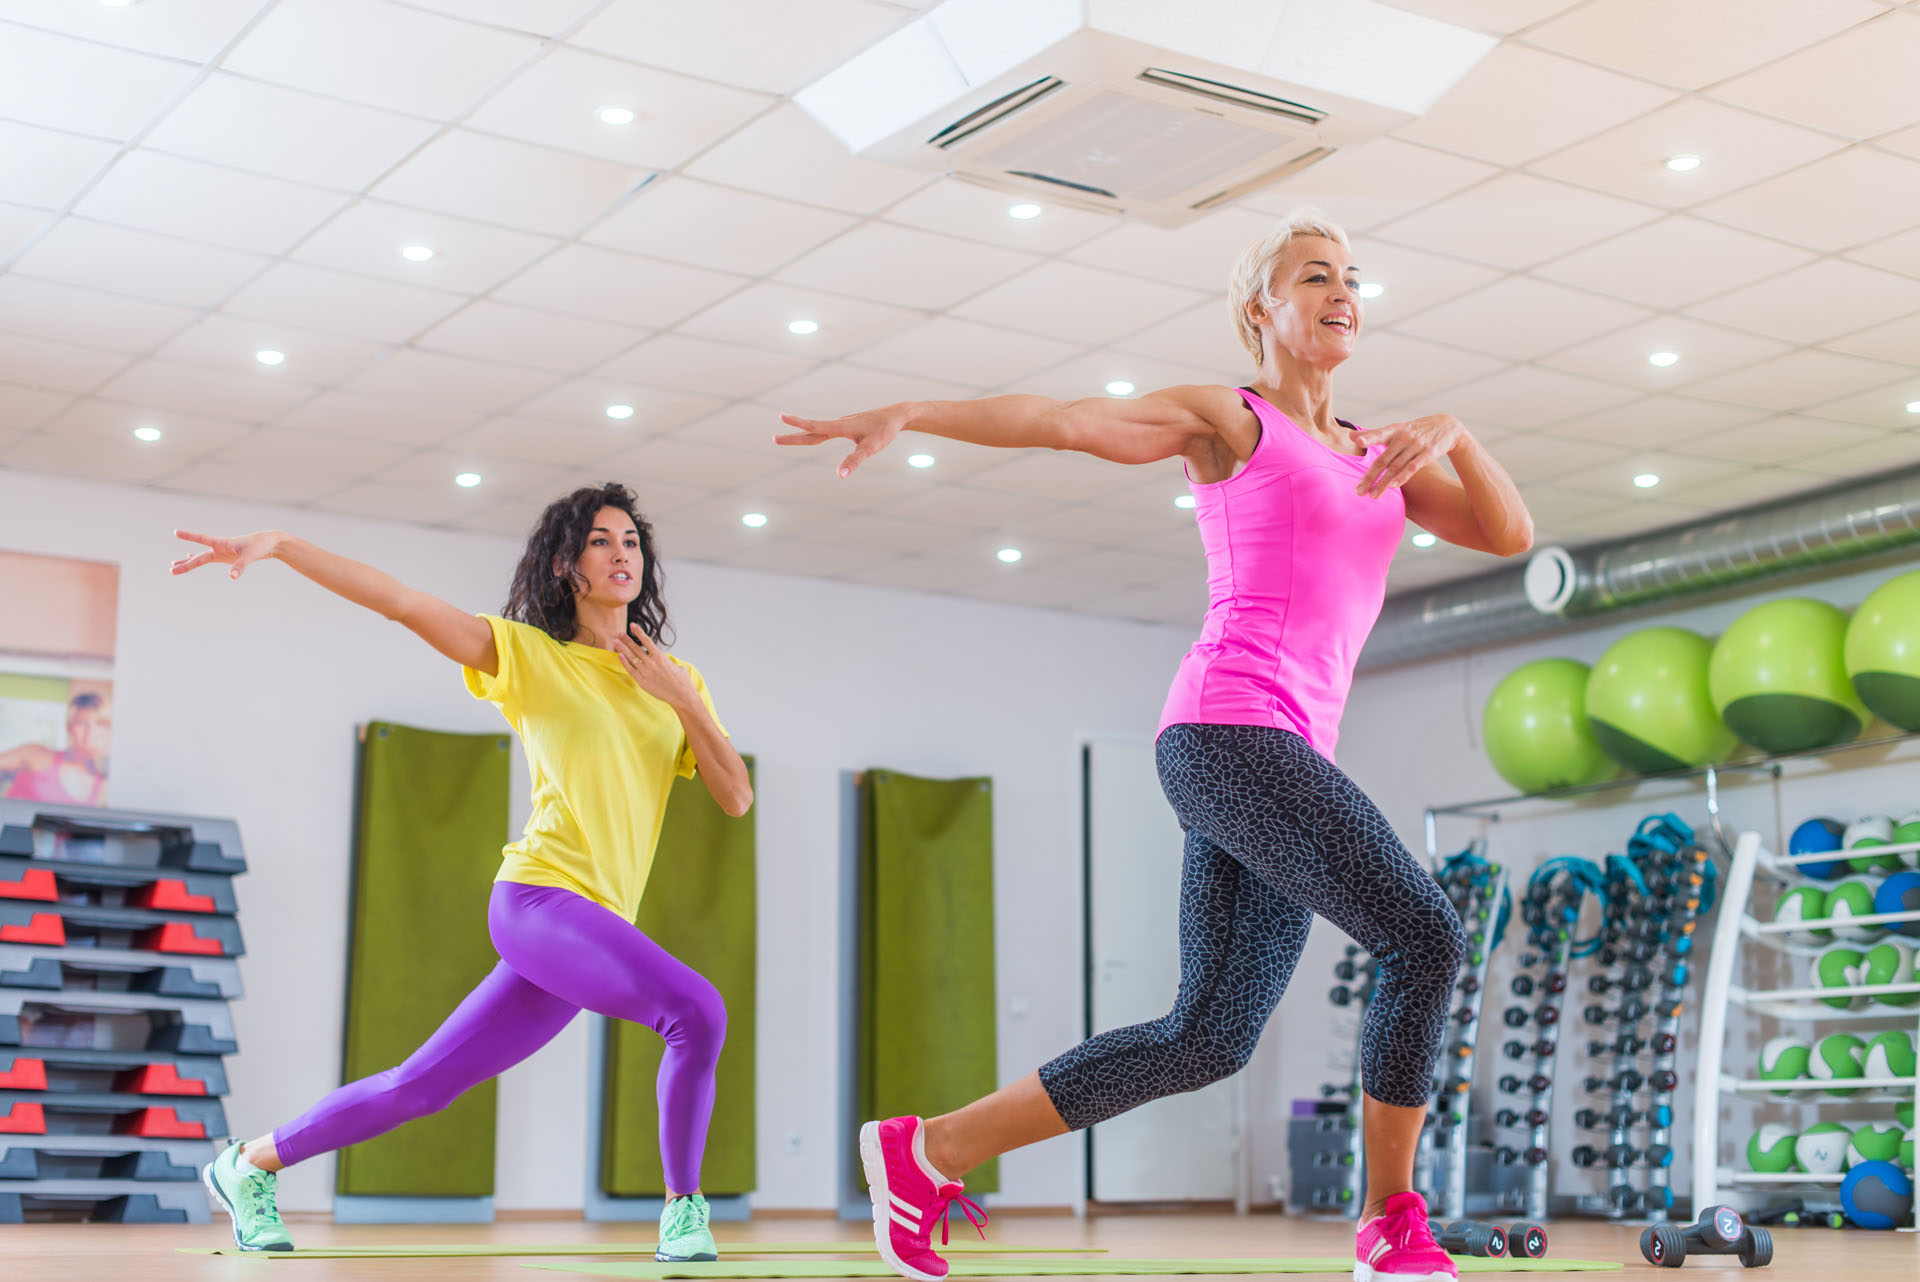 Two smiling female fitness models working out in gym or studio, doing cardio exercise, dancing zumba